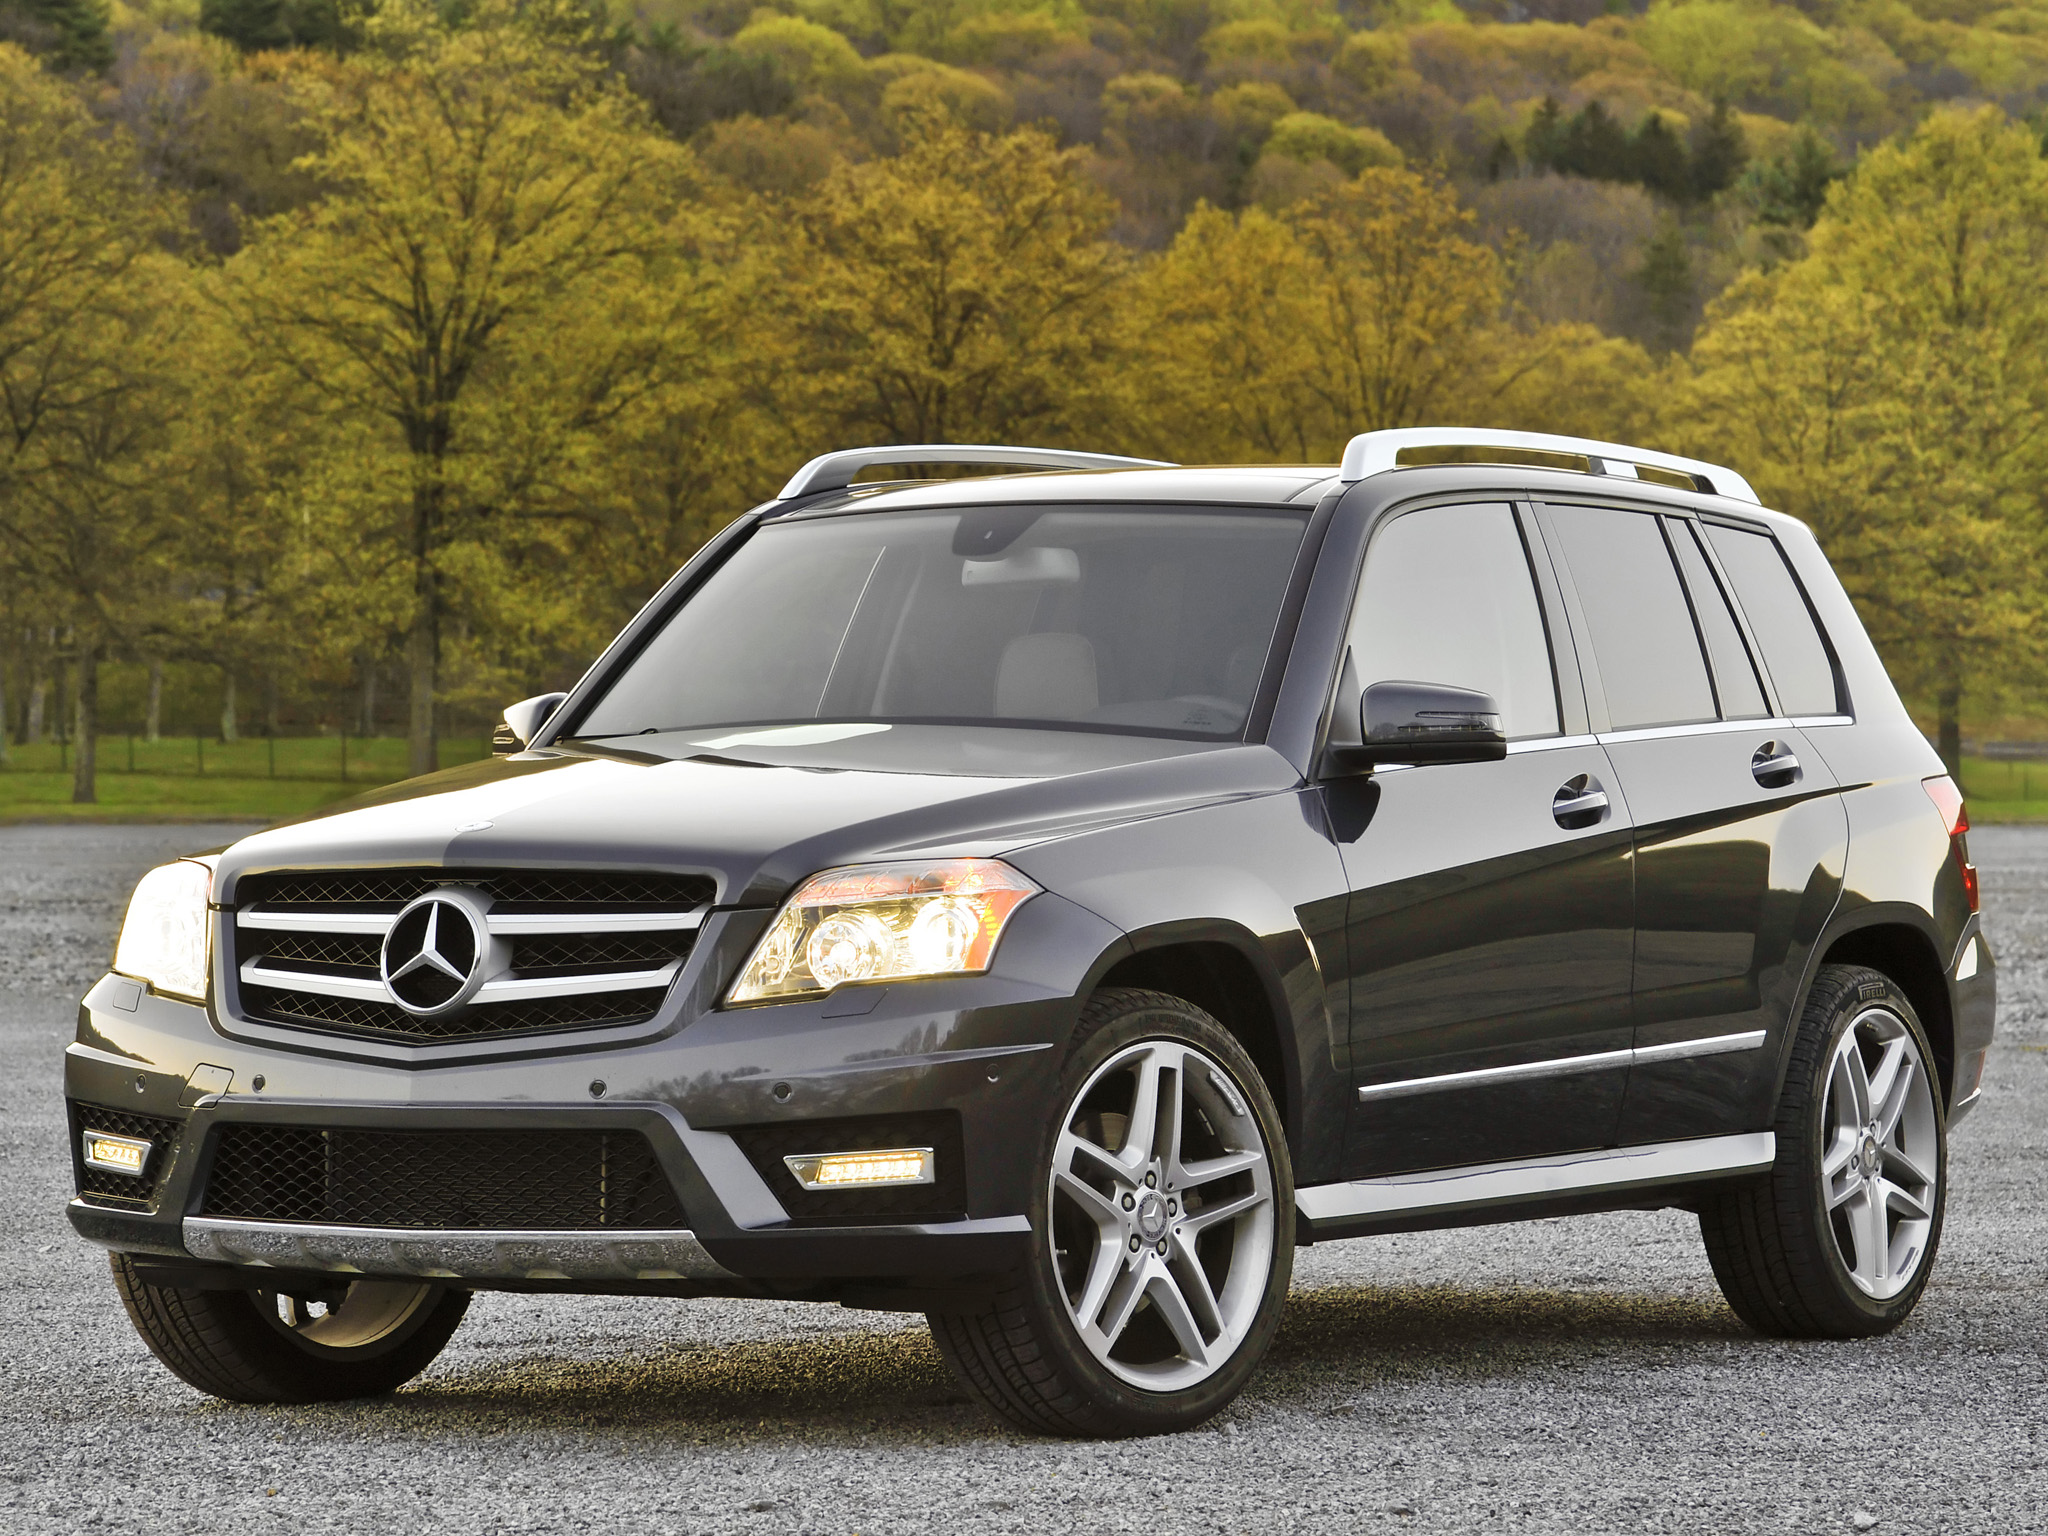 mercedes benz glk amg picture 90363 mercedes benz. Black Bedroom Furniture Sets. Home Design Ideas